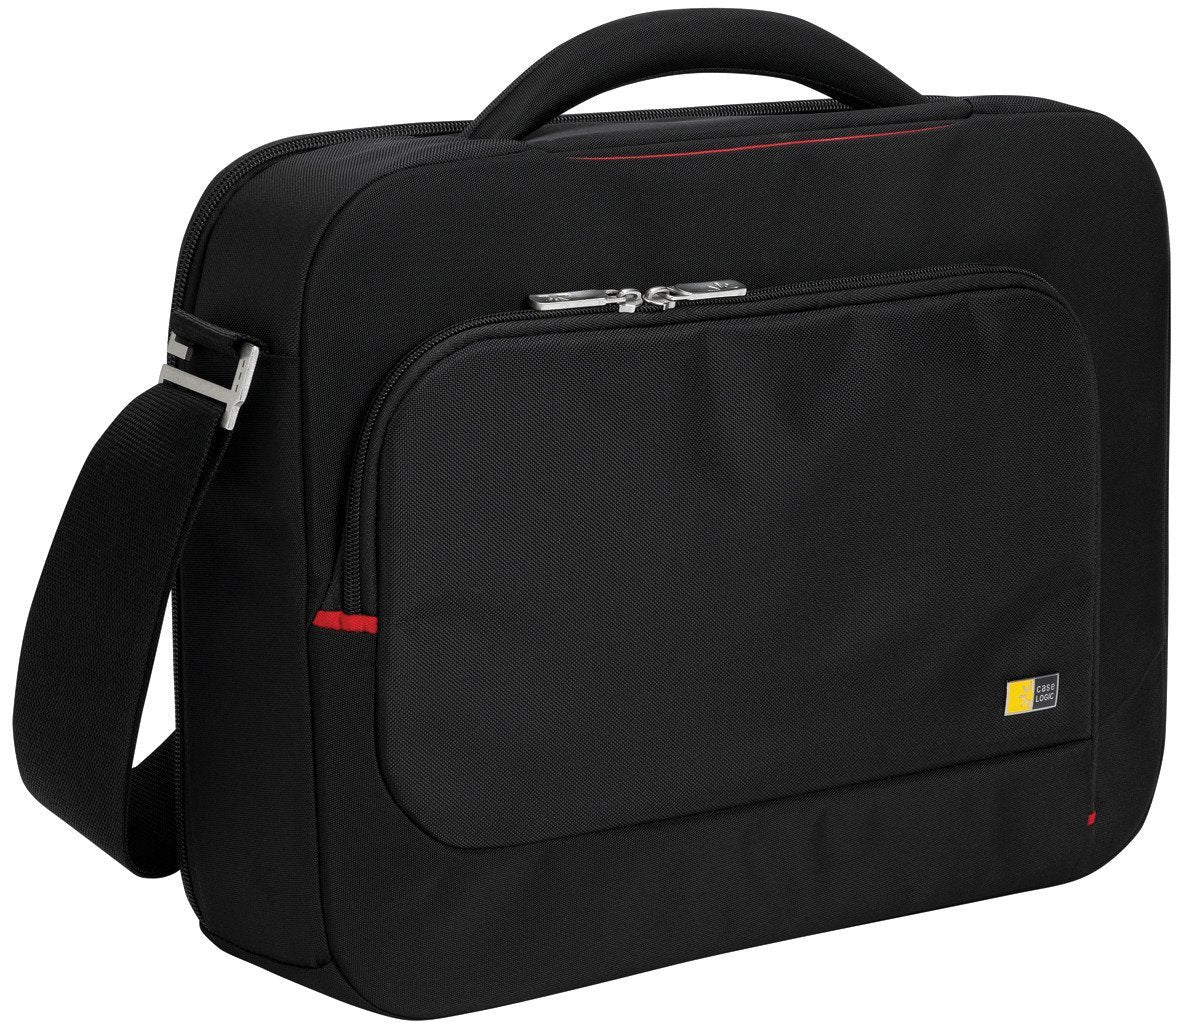 Case Logic Tnc-216 16-Inch Laptop Briefcase (Black)